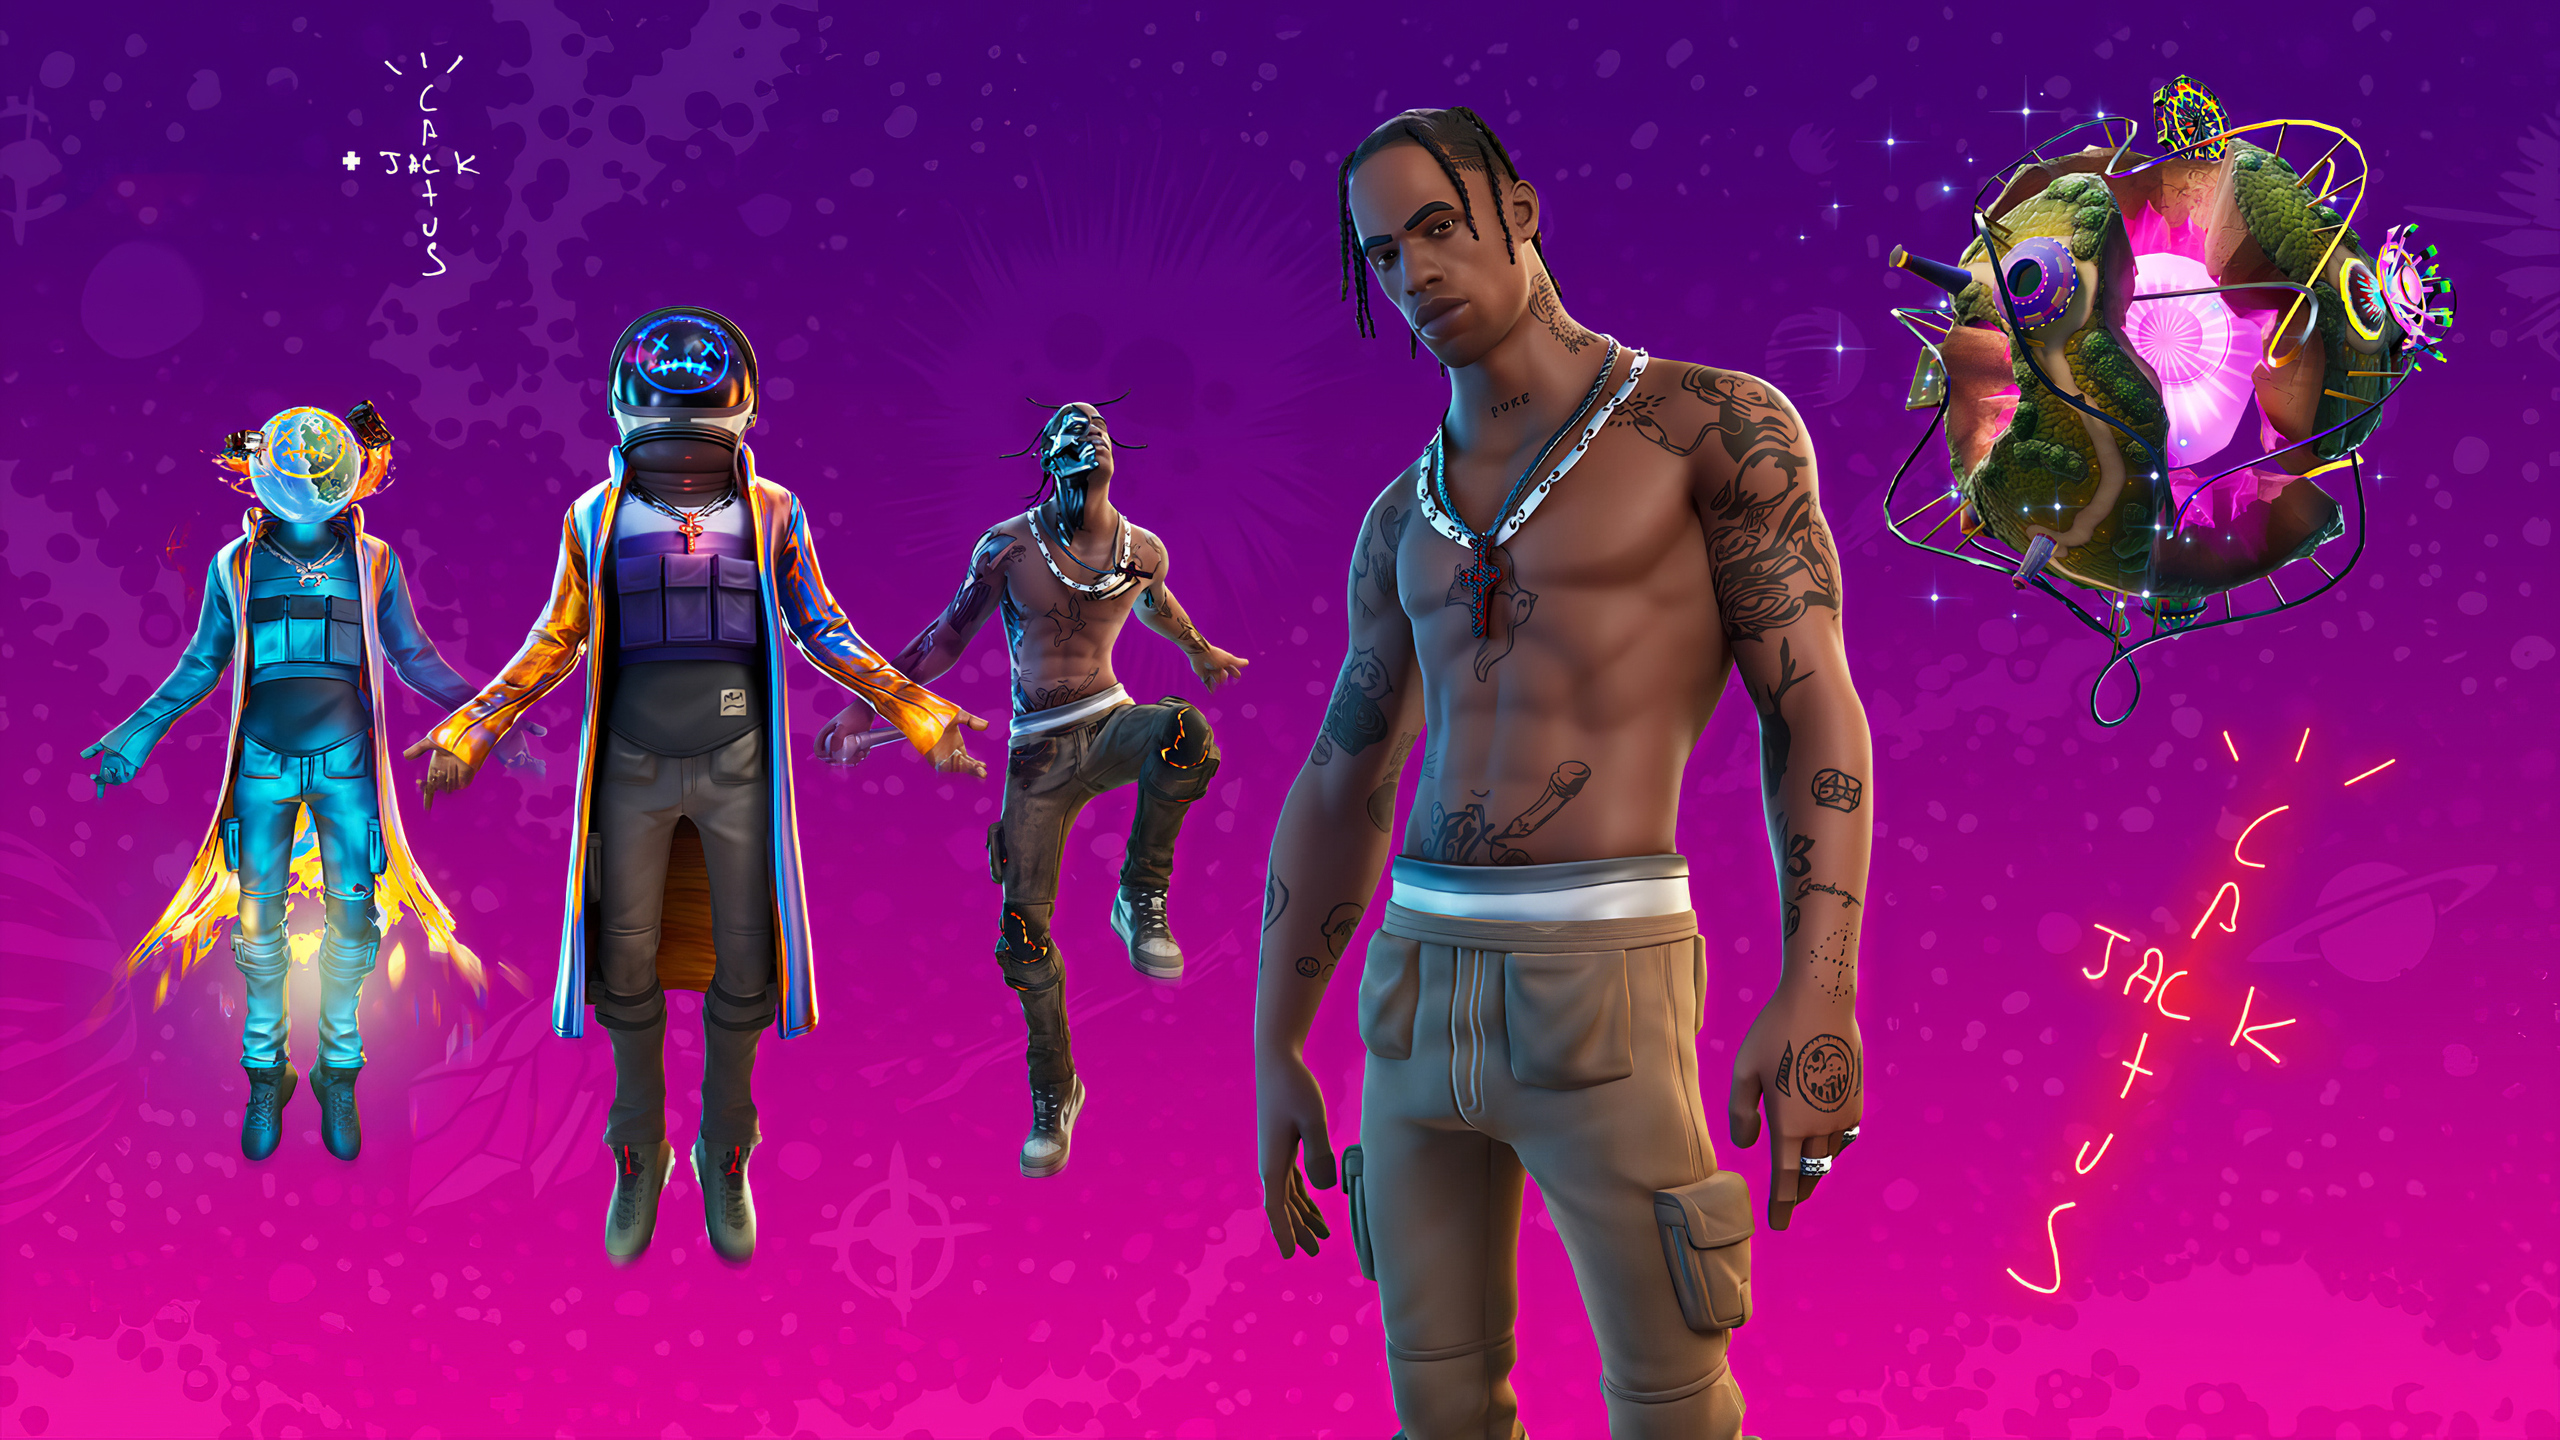 2560x1440 Fortnite Travis Scott 2020 1440p Resolution Hd 4k Wallpapers Images Backgrounds Photos And Pictures